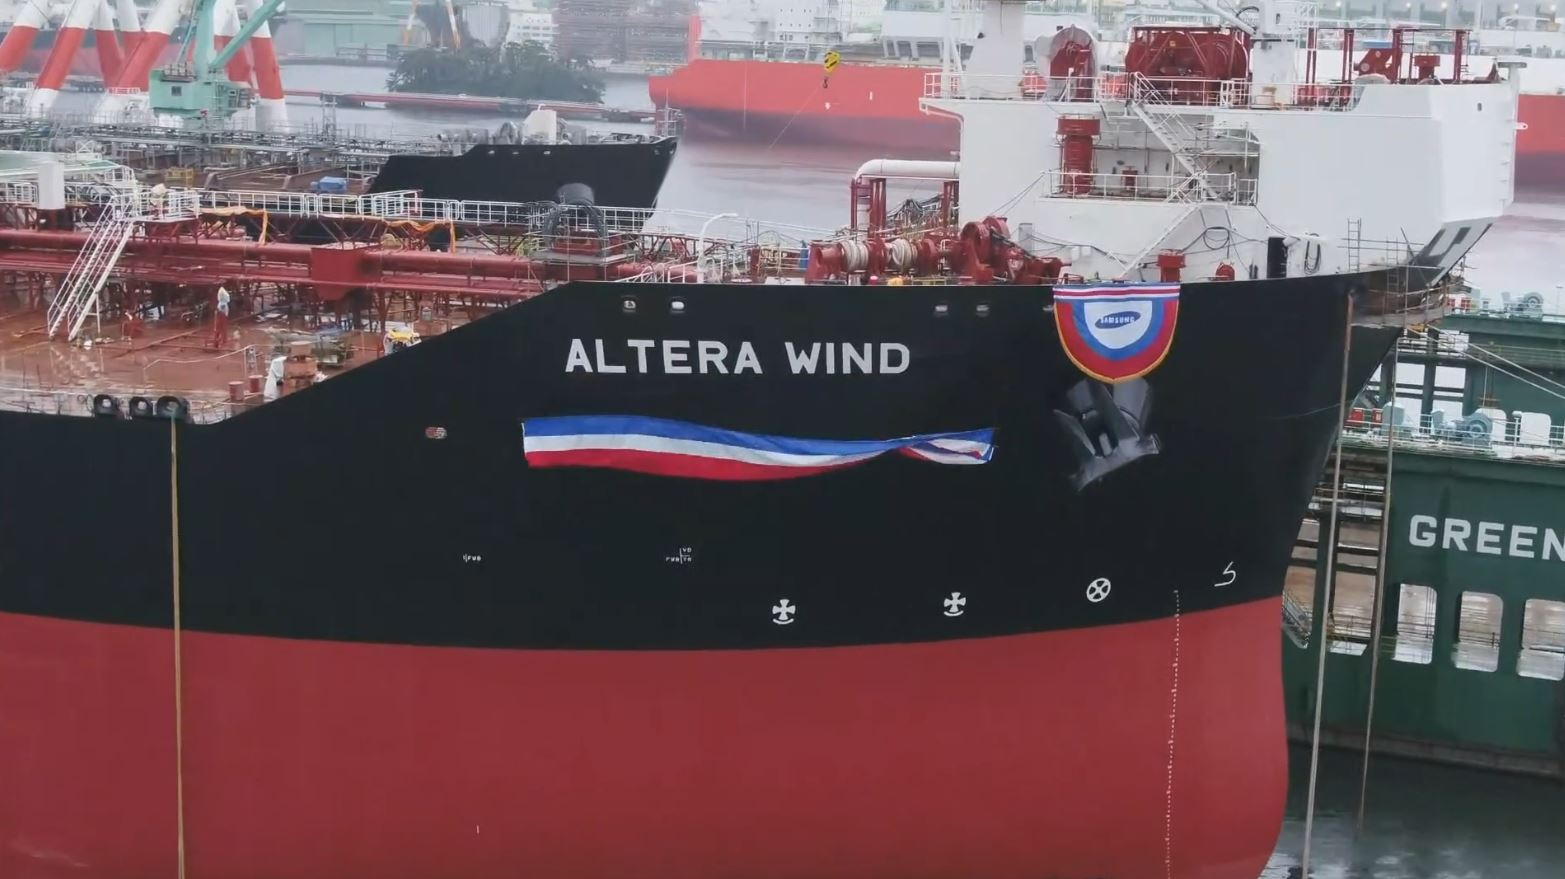 Sixth LNG-powered shuttle tanker to join Altera's fleet